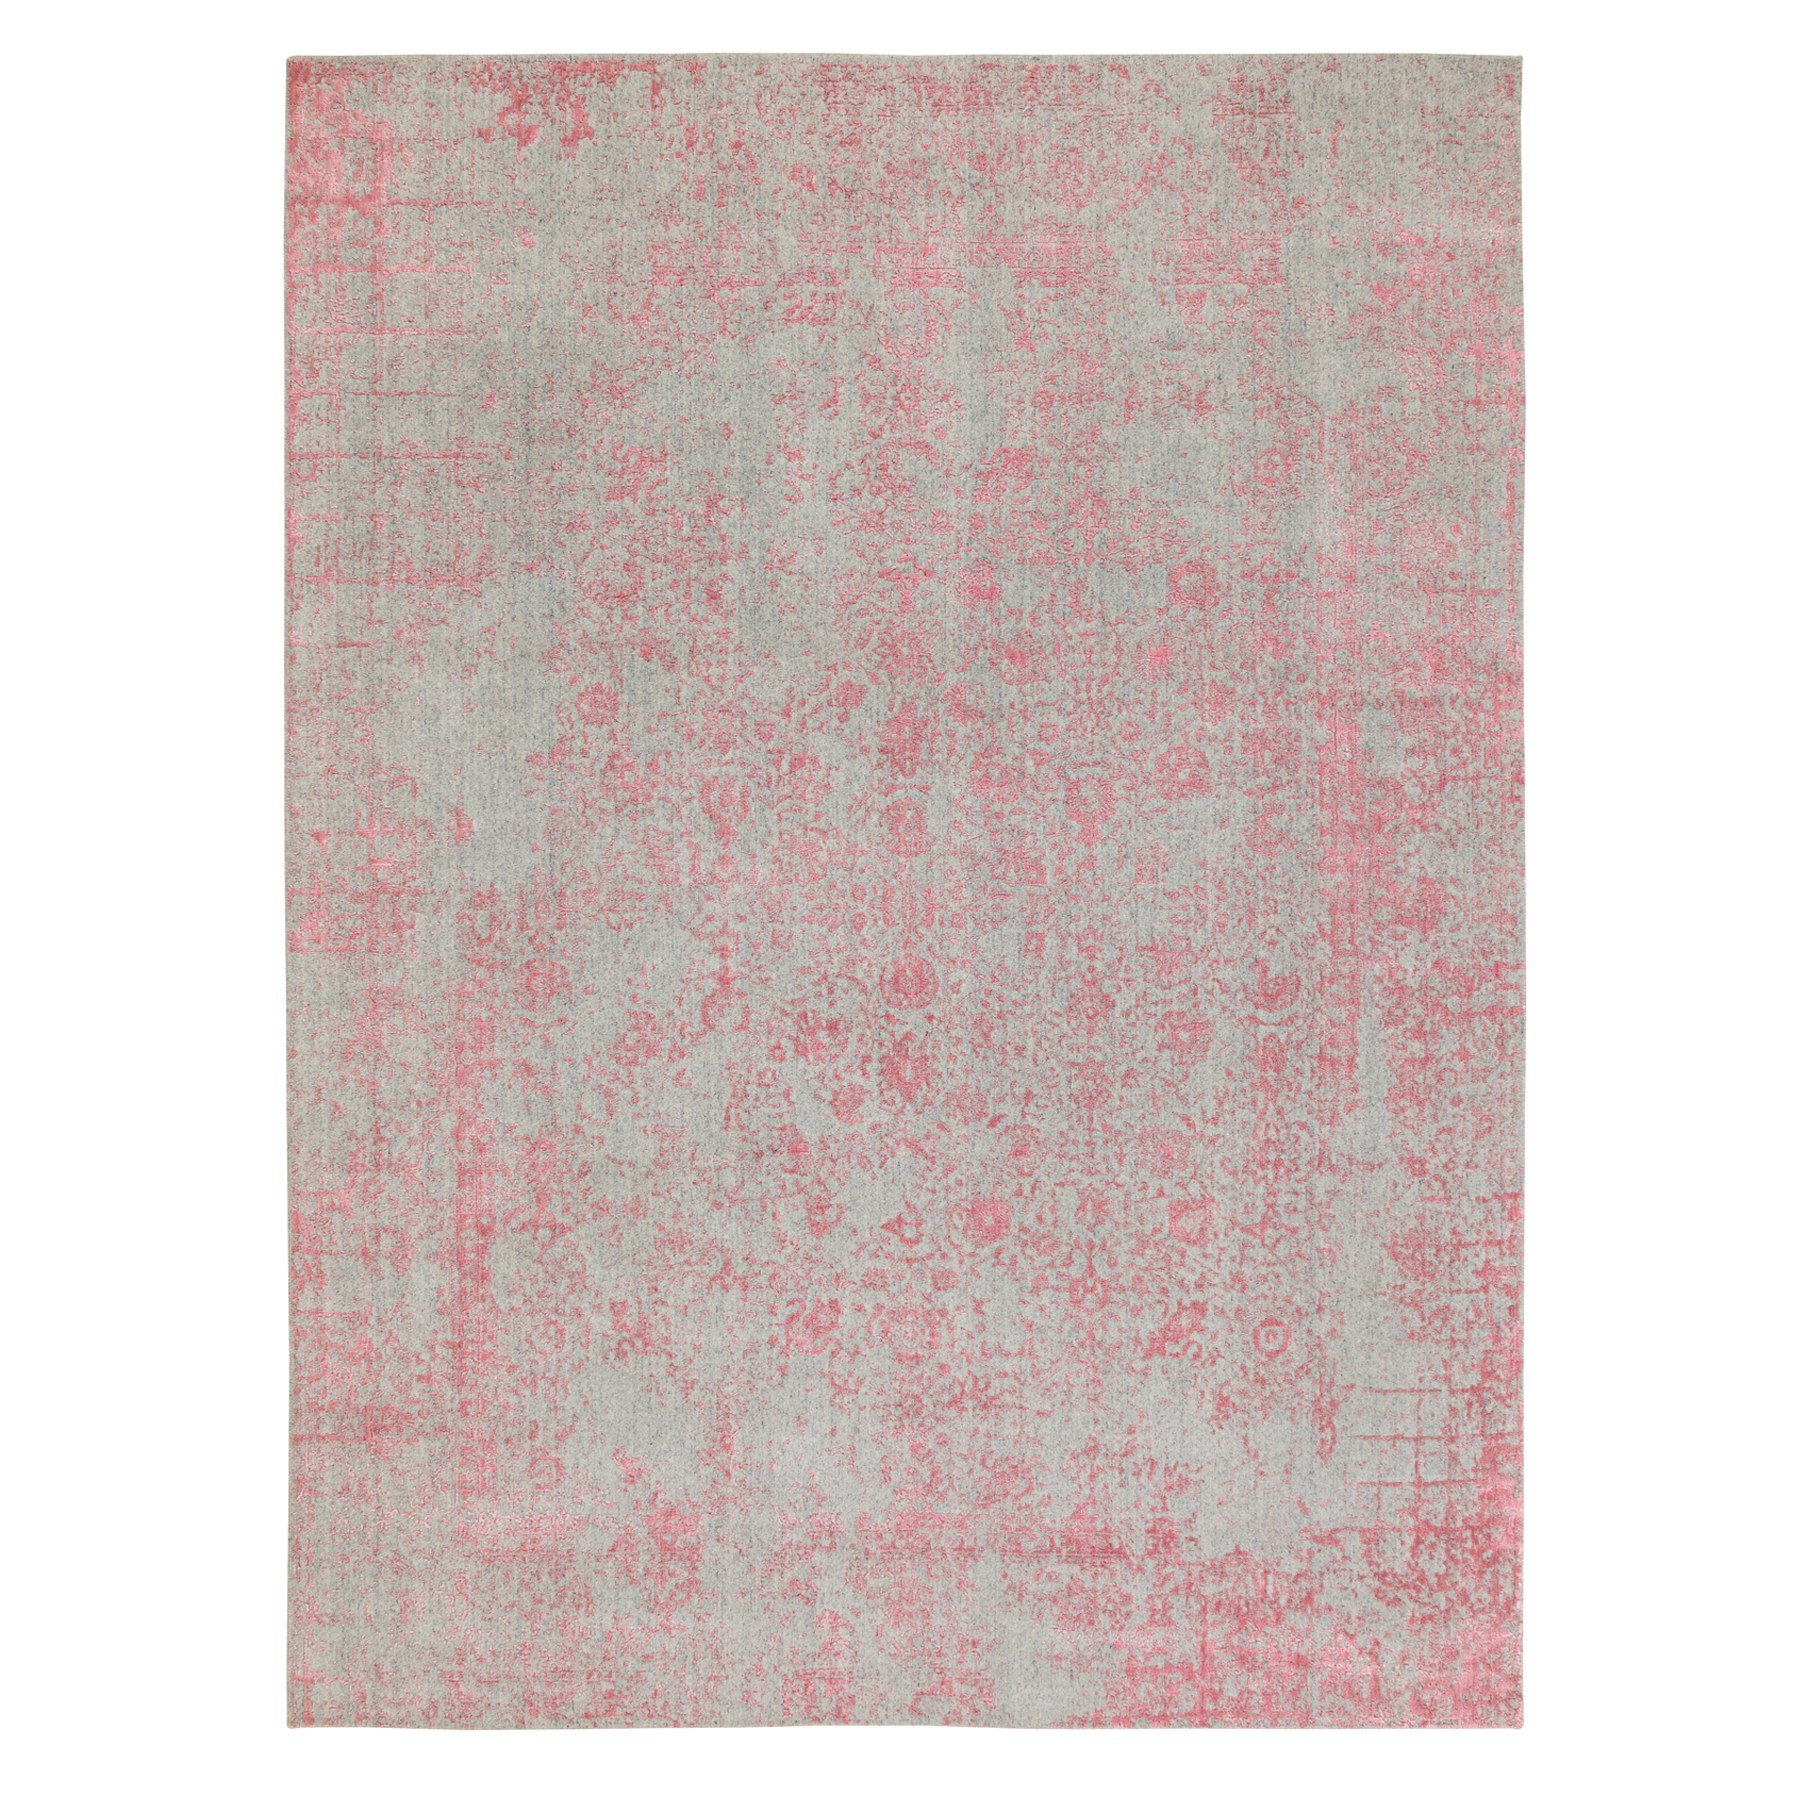 9'X12' Pink Wool And Art Silk All Over Design Hand Loomed Jacquard Oriental Rug moae8e89